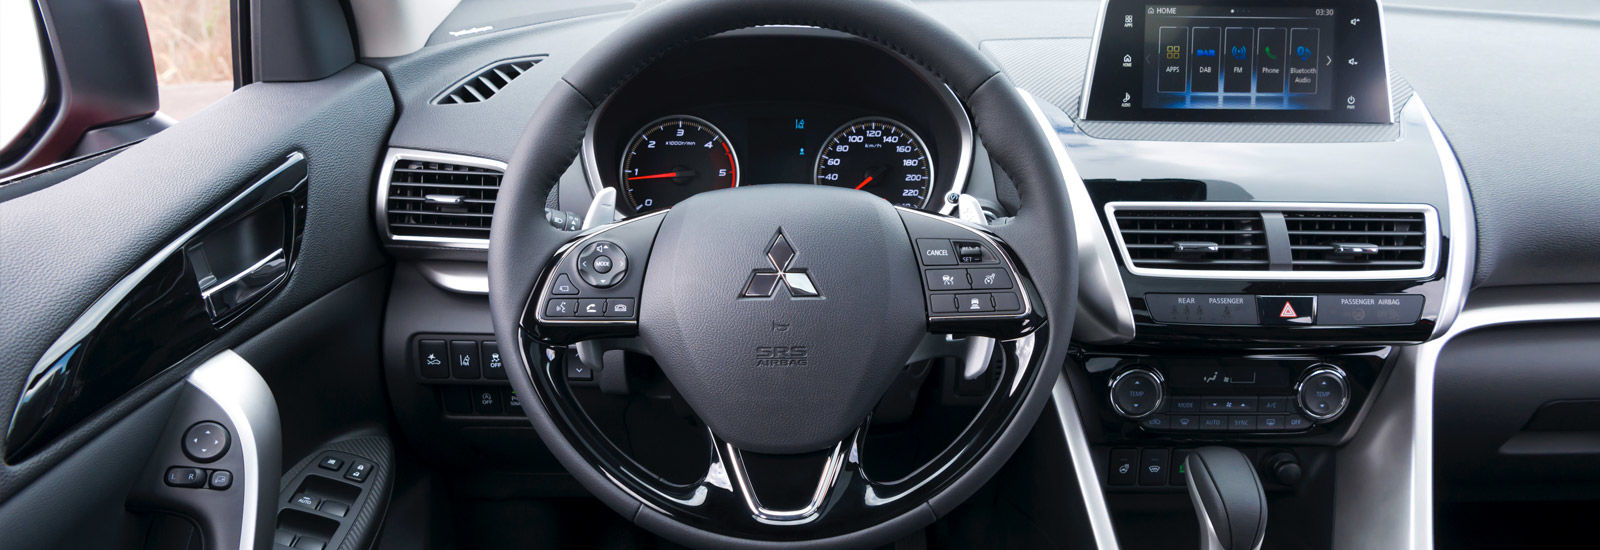 2018 mitsubishi outlander interior. contemporary 2018 inside the cabin features a more paredback design than either  outlander or asx and boasts new infotainment system mounted above slick centre  with 2018 mitsubishi outlander interior